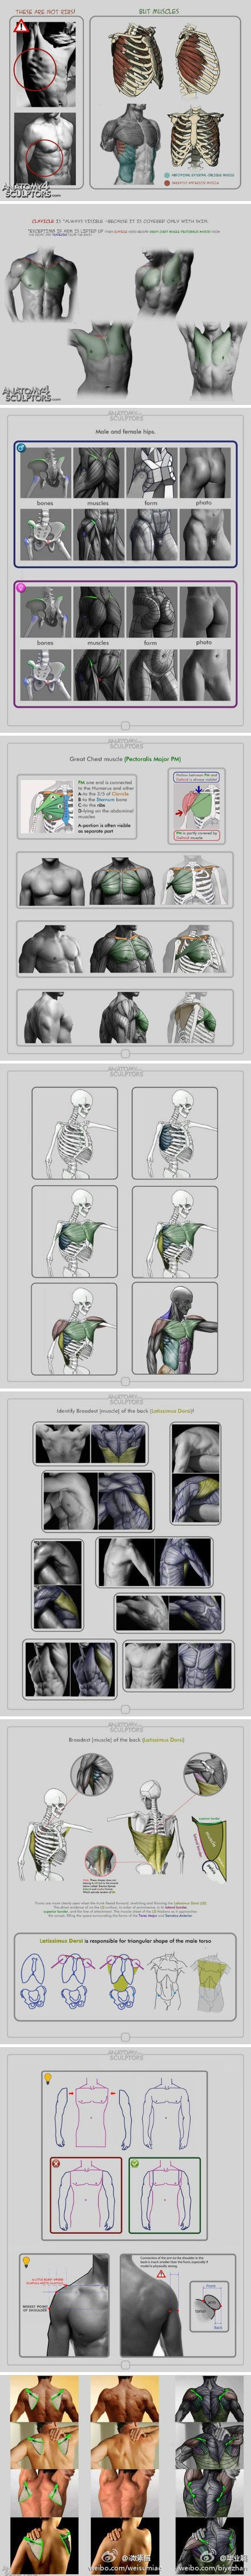 Anatomy for sculpture